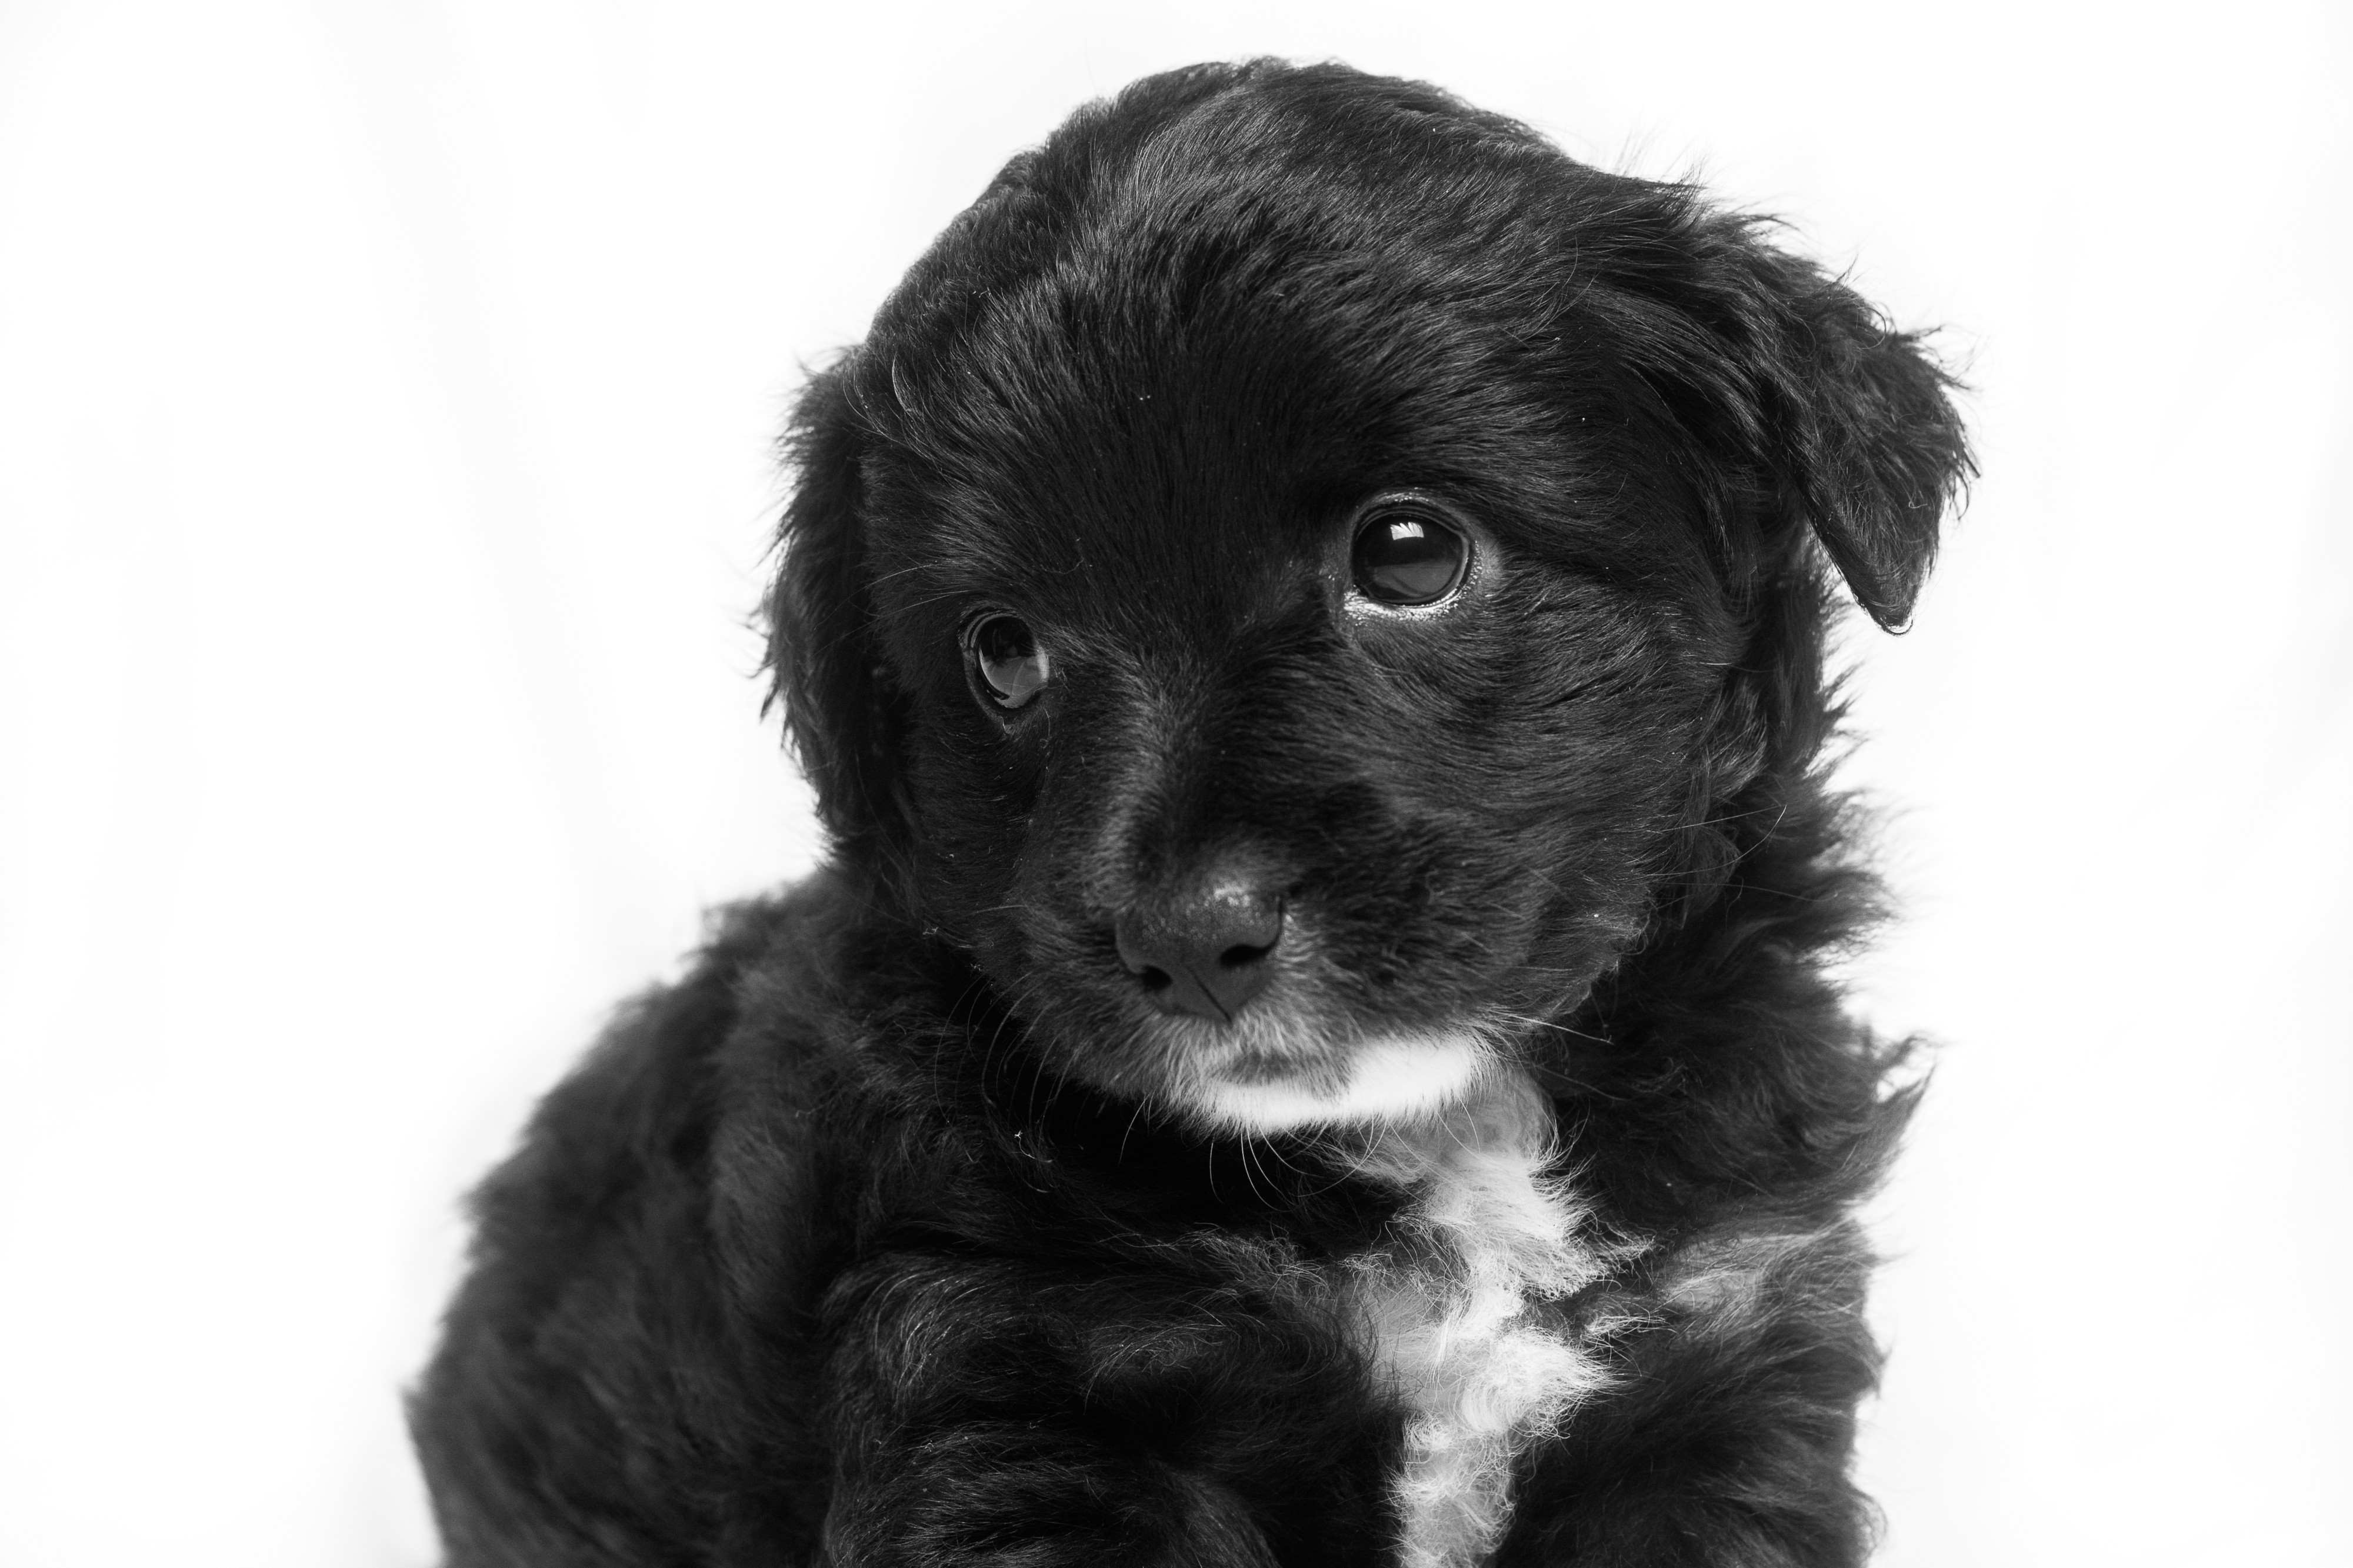 Close up of a little black and white puppy looking up at something with curious eyes